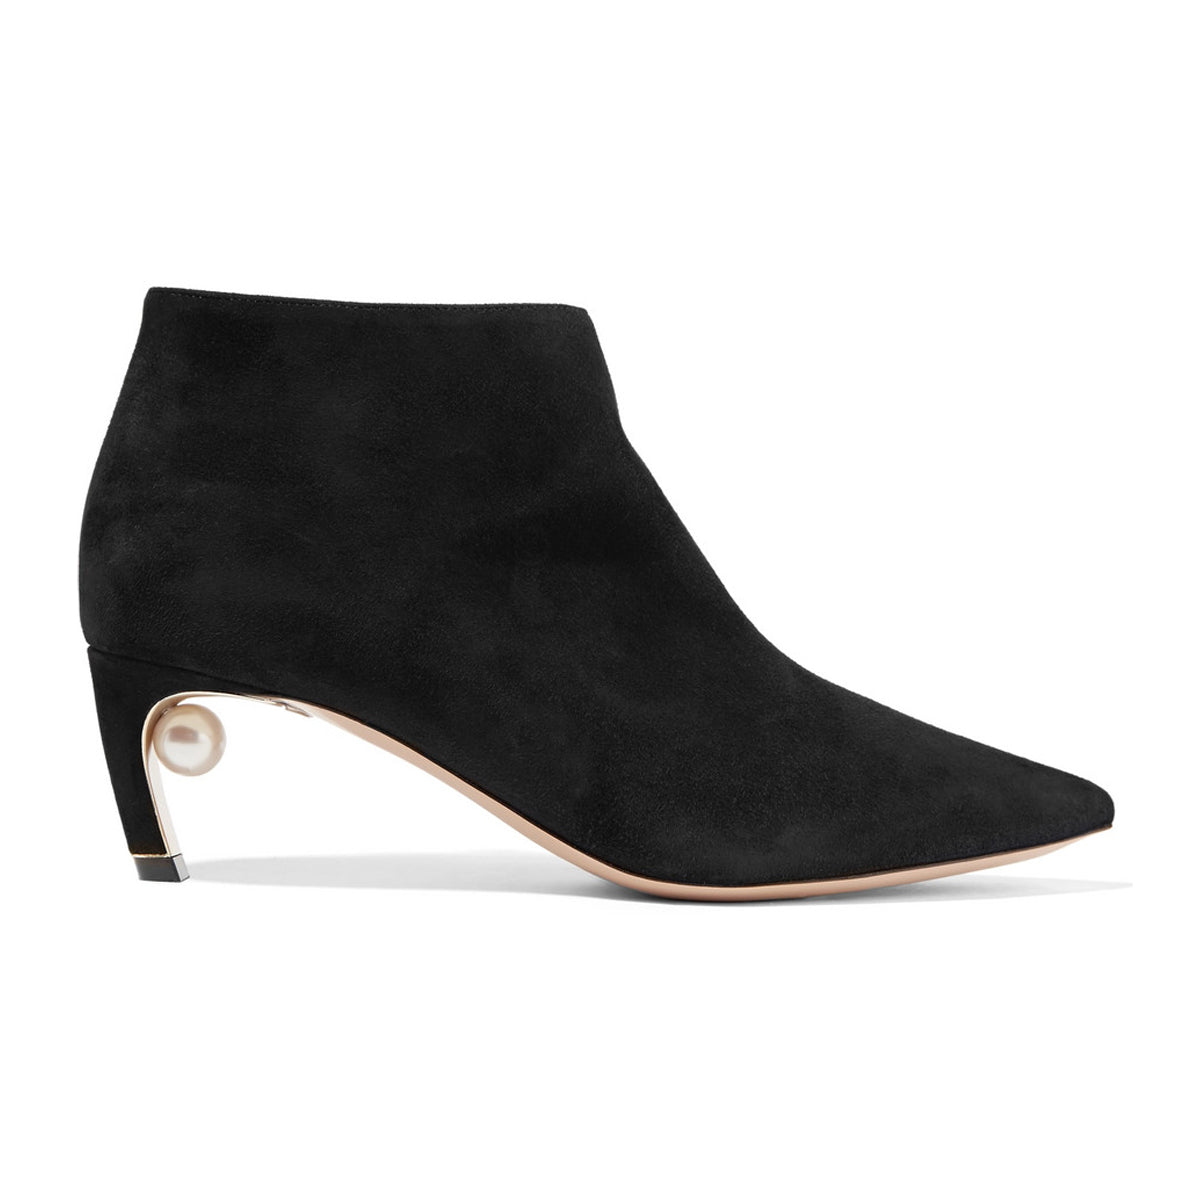 Mira suede pearl boots